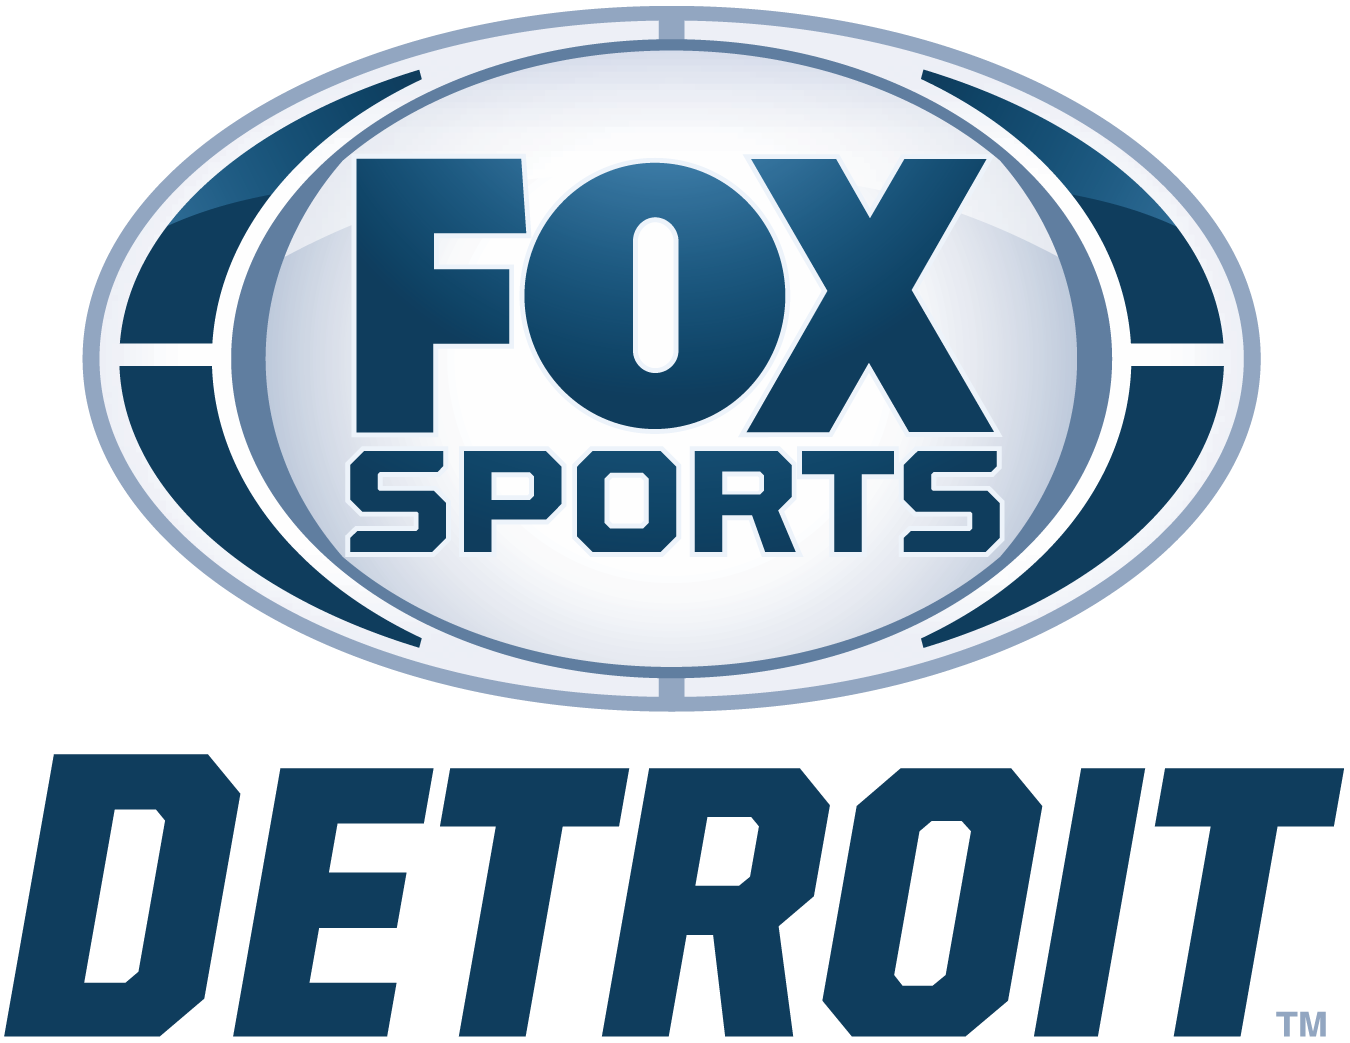 Fox Sports Detroit Wikipedia